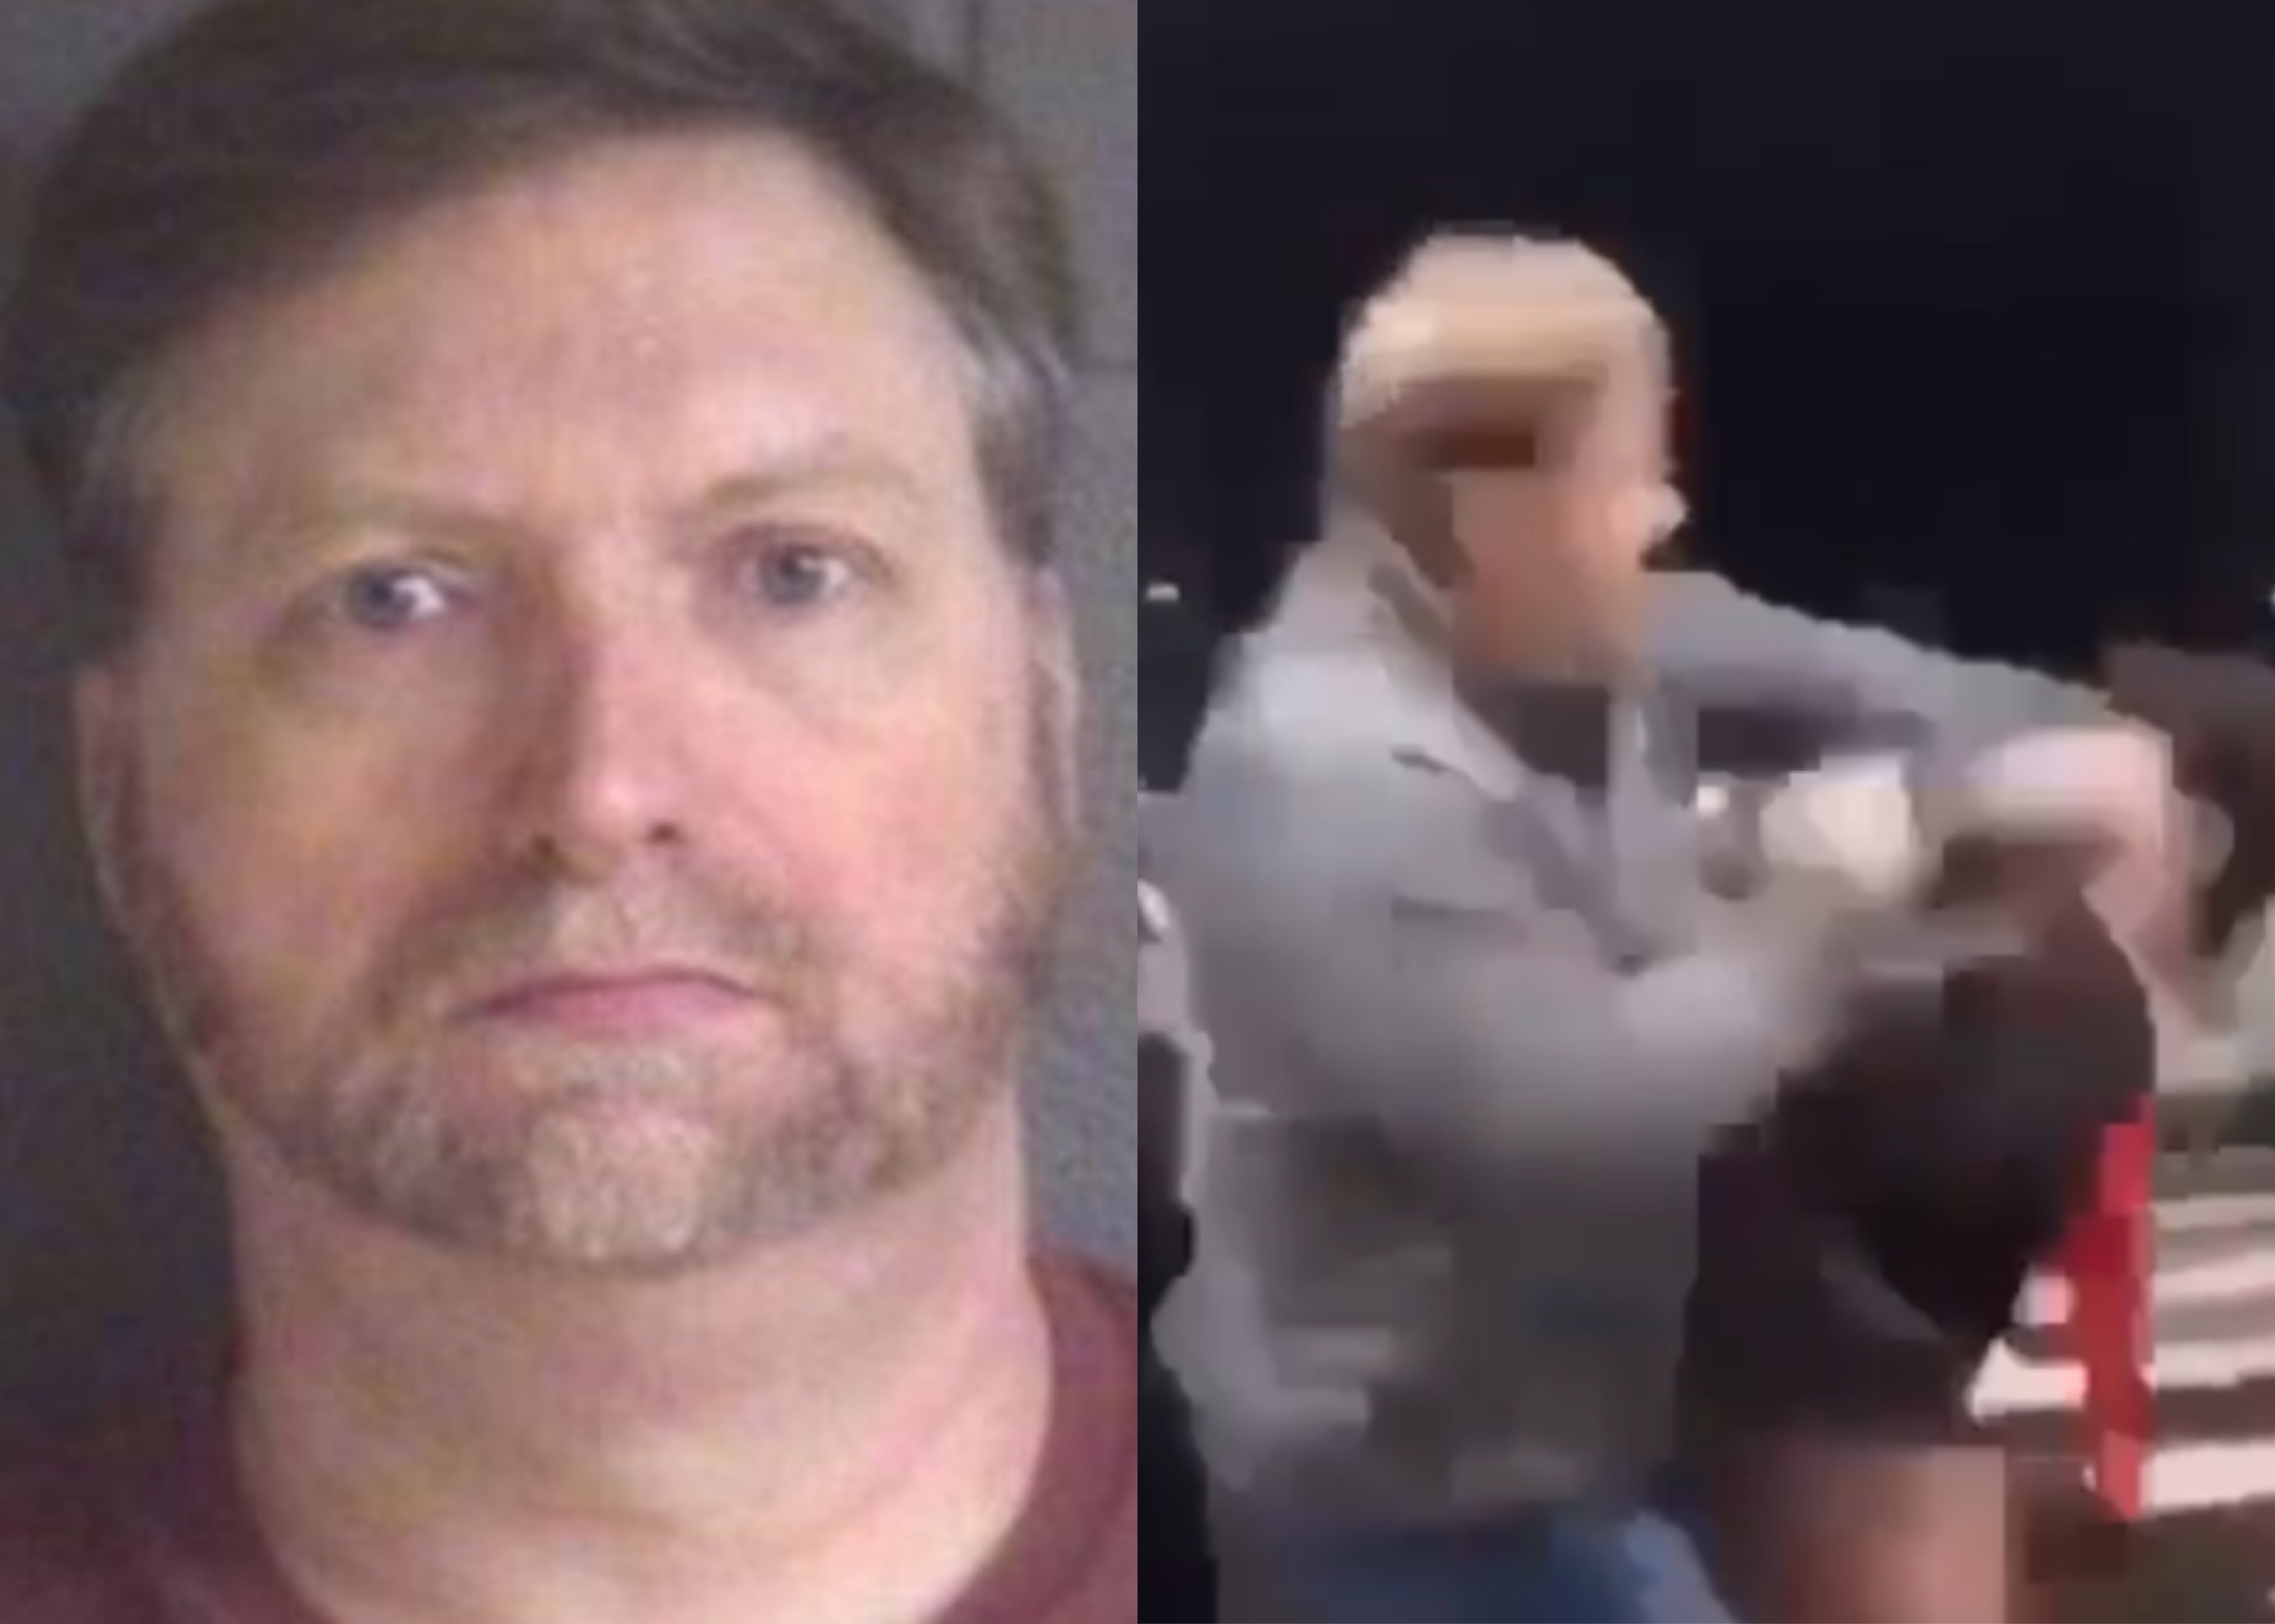 North Carolina Man Charged With Assault After Viral Video Reportedly Shows Him Punching A Young Girl